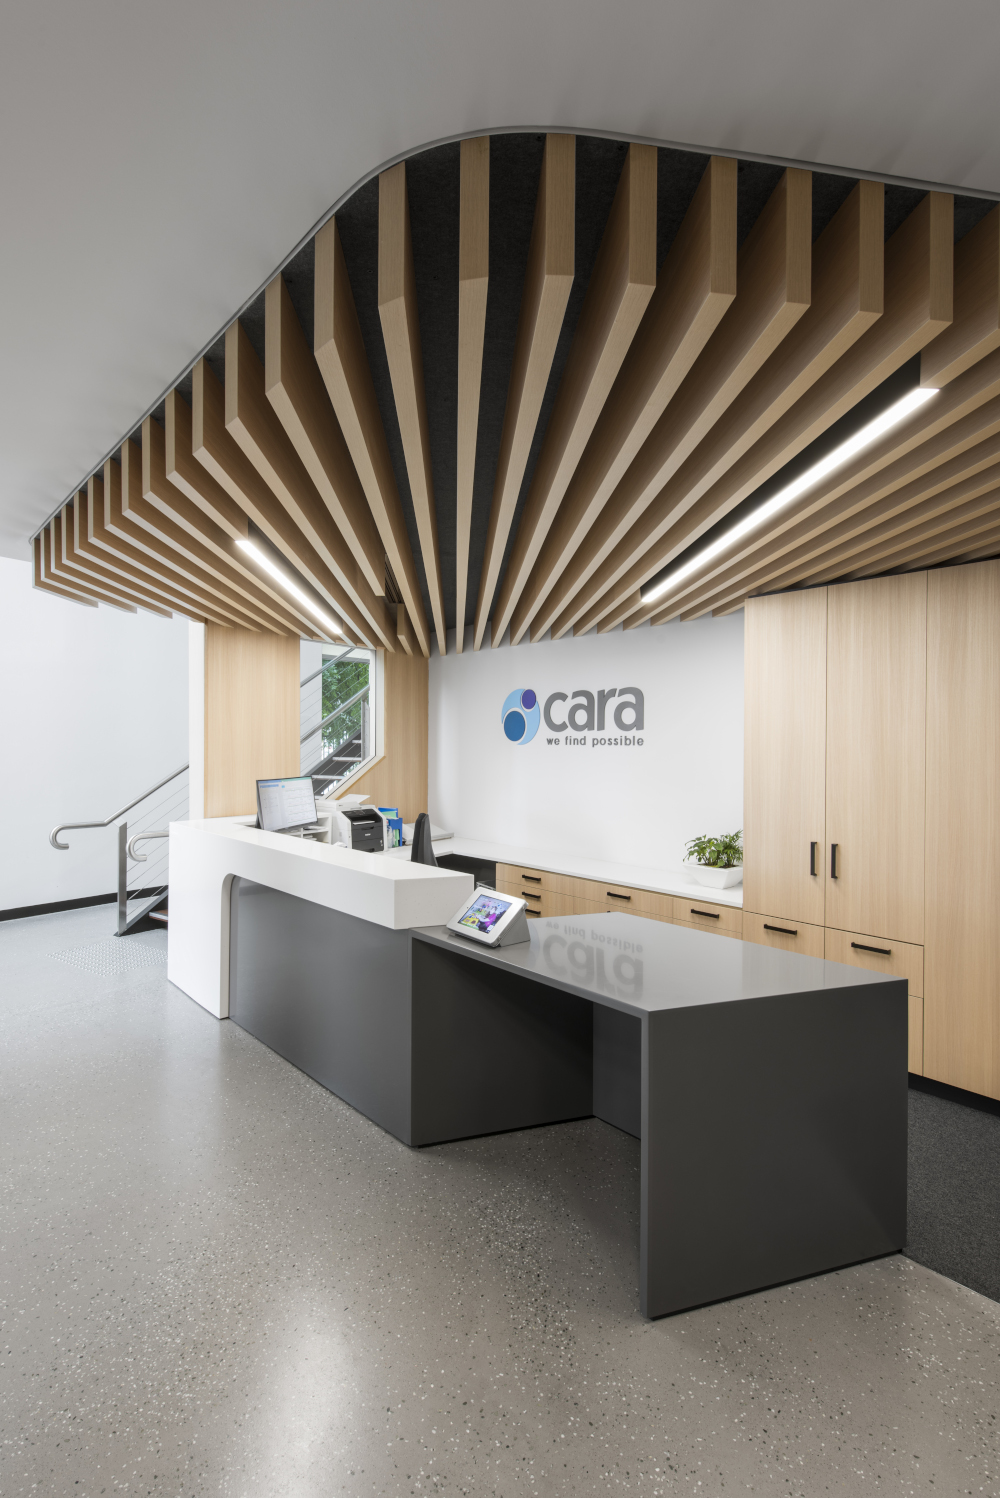 Cara Office Relocation